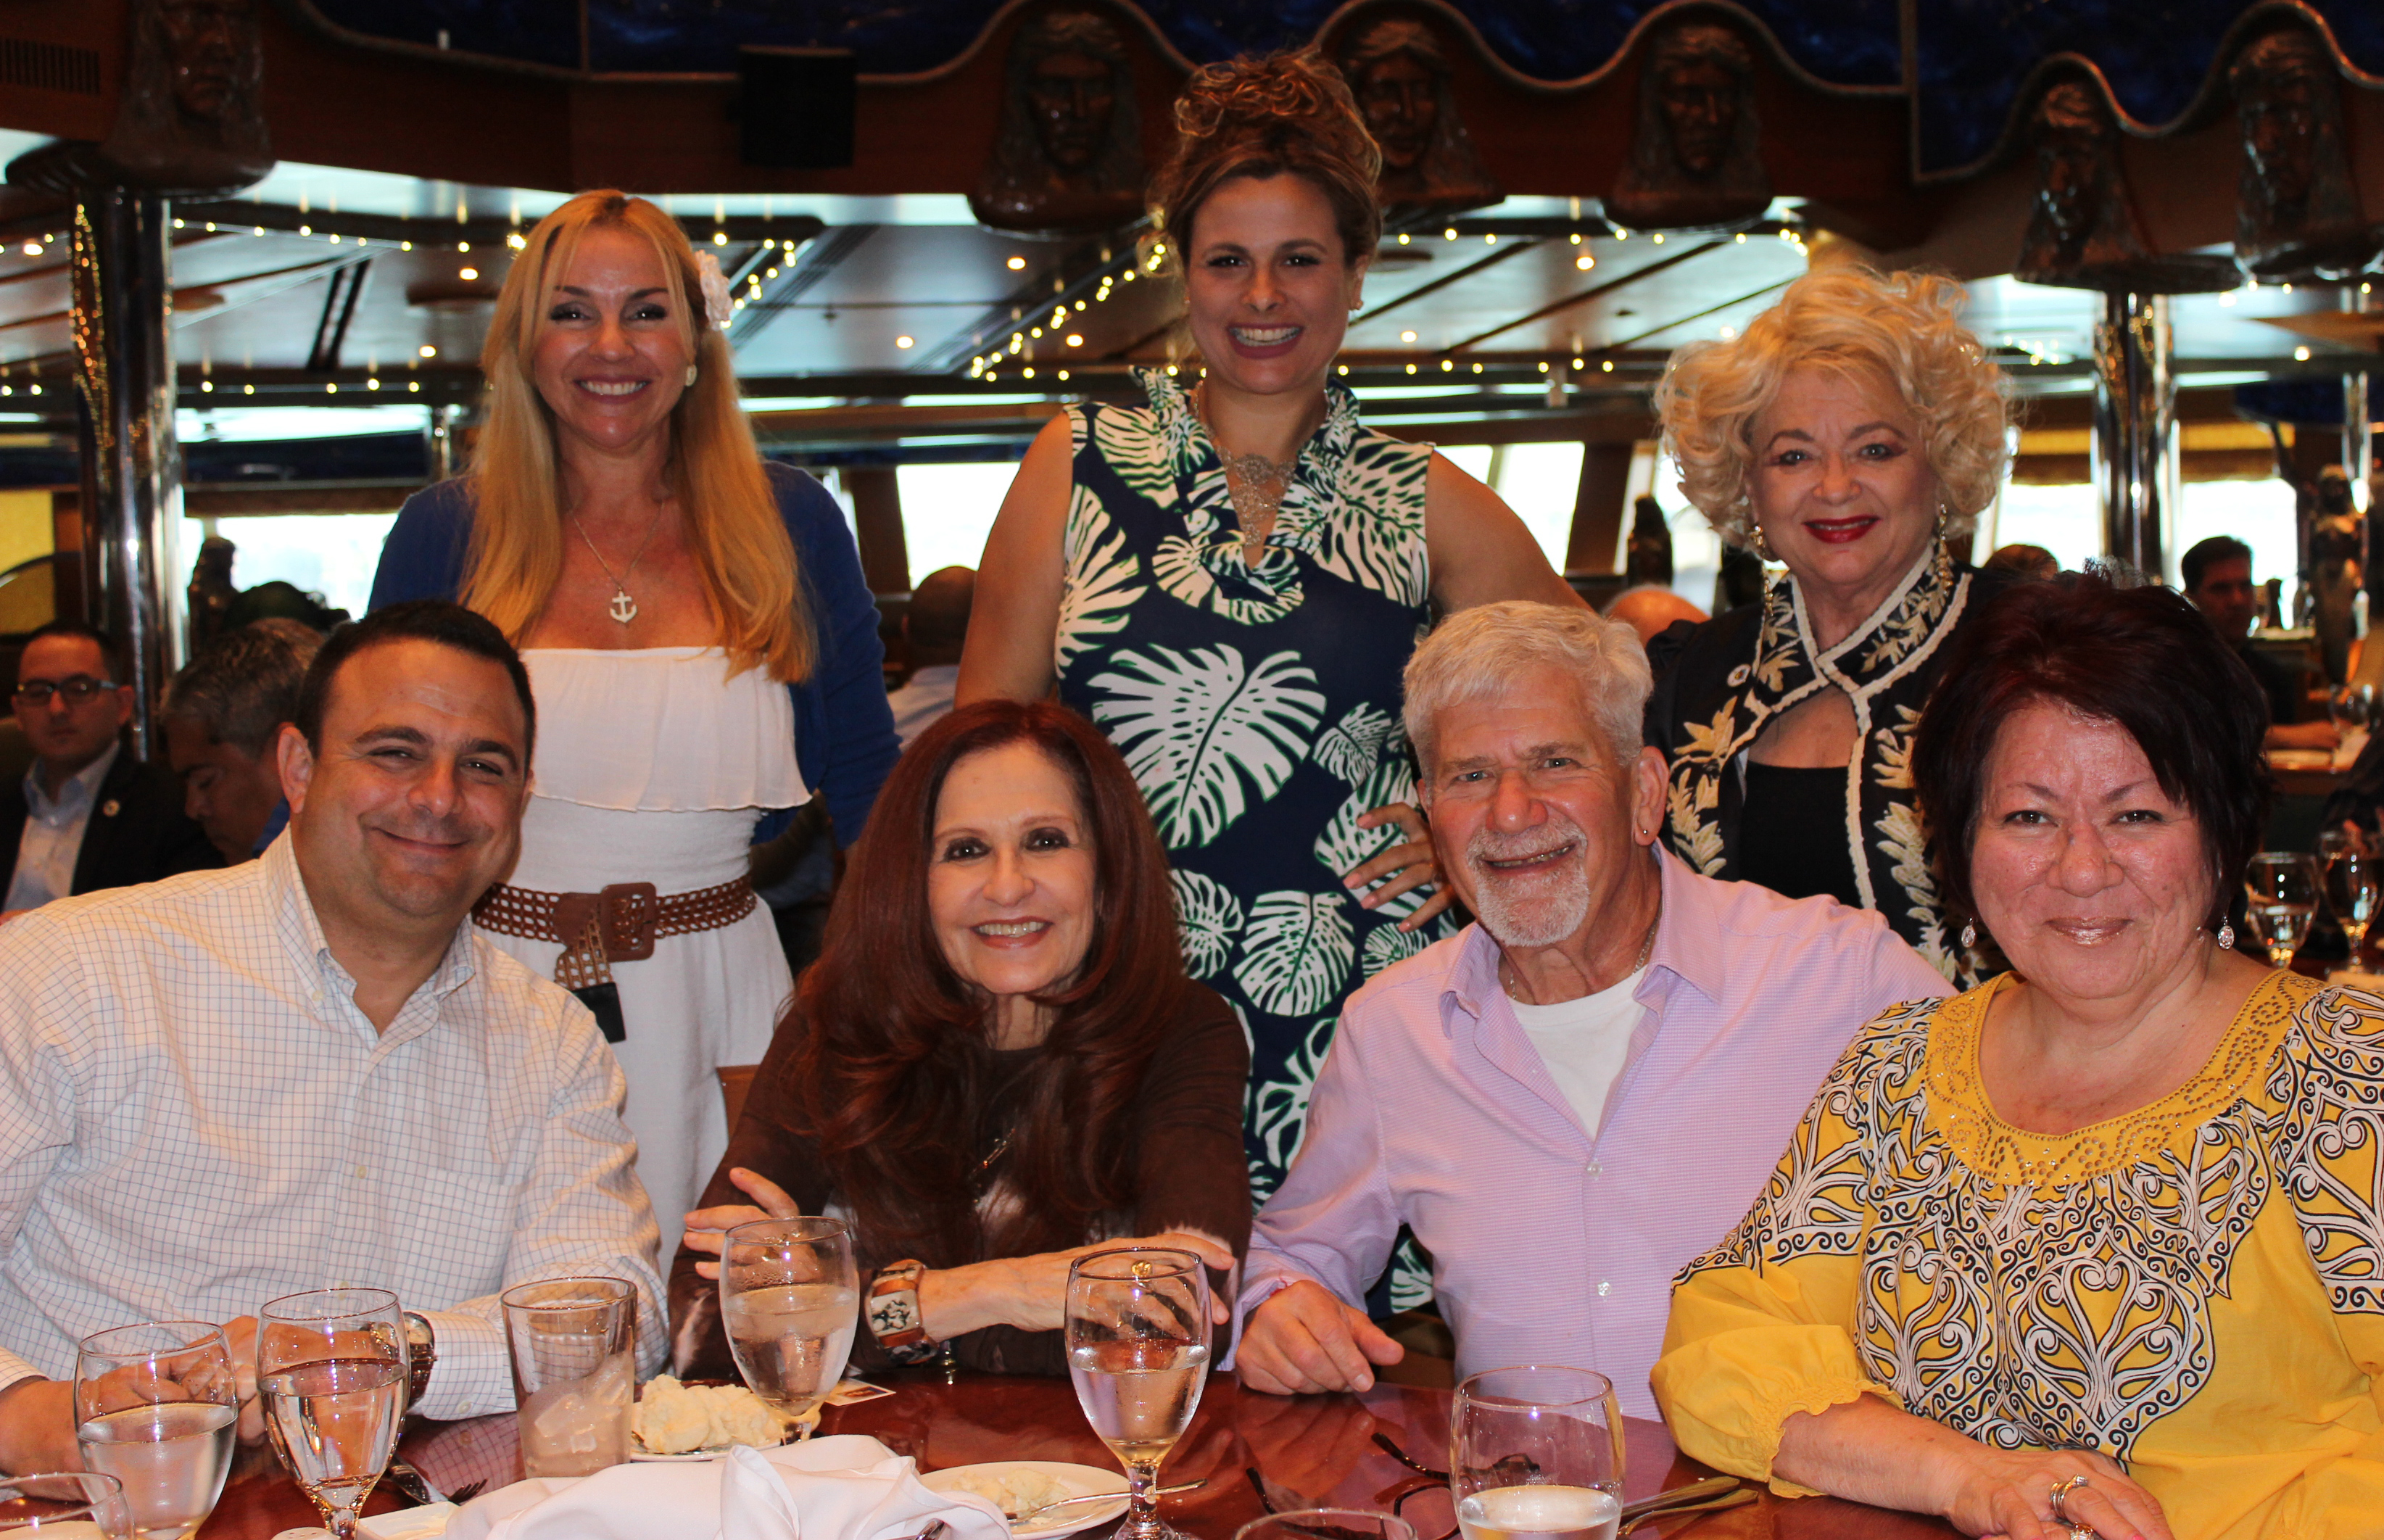 Doral Chamber of Commerce Carnival Cruise Luncheon 2019, Networking Event in Miami, Florida. Members and non-members taking a group photo together.